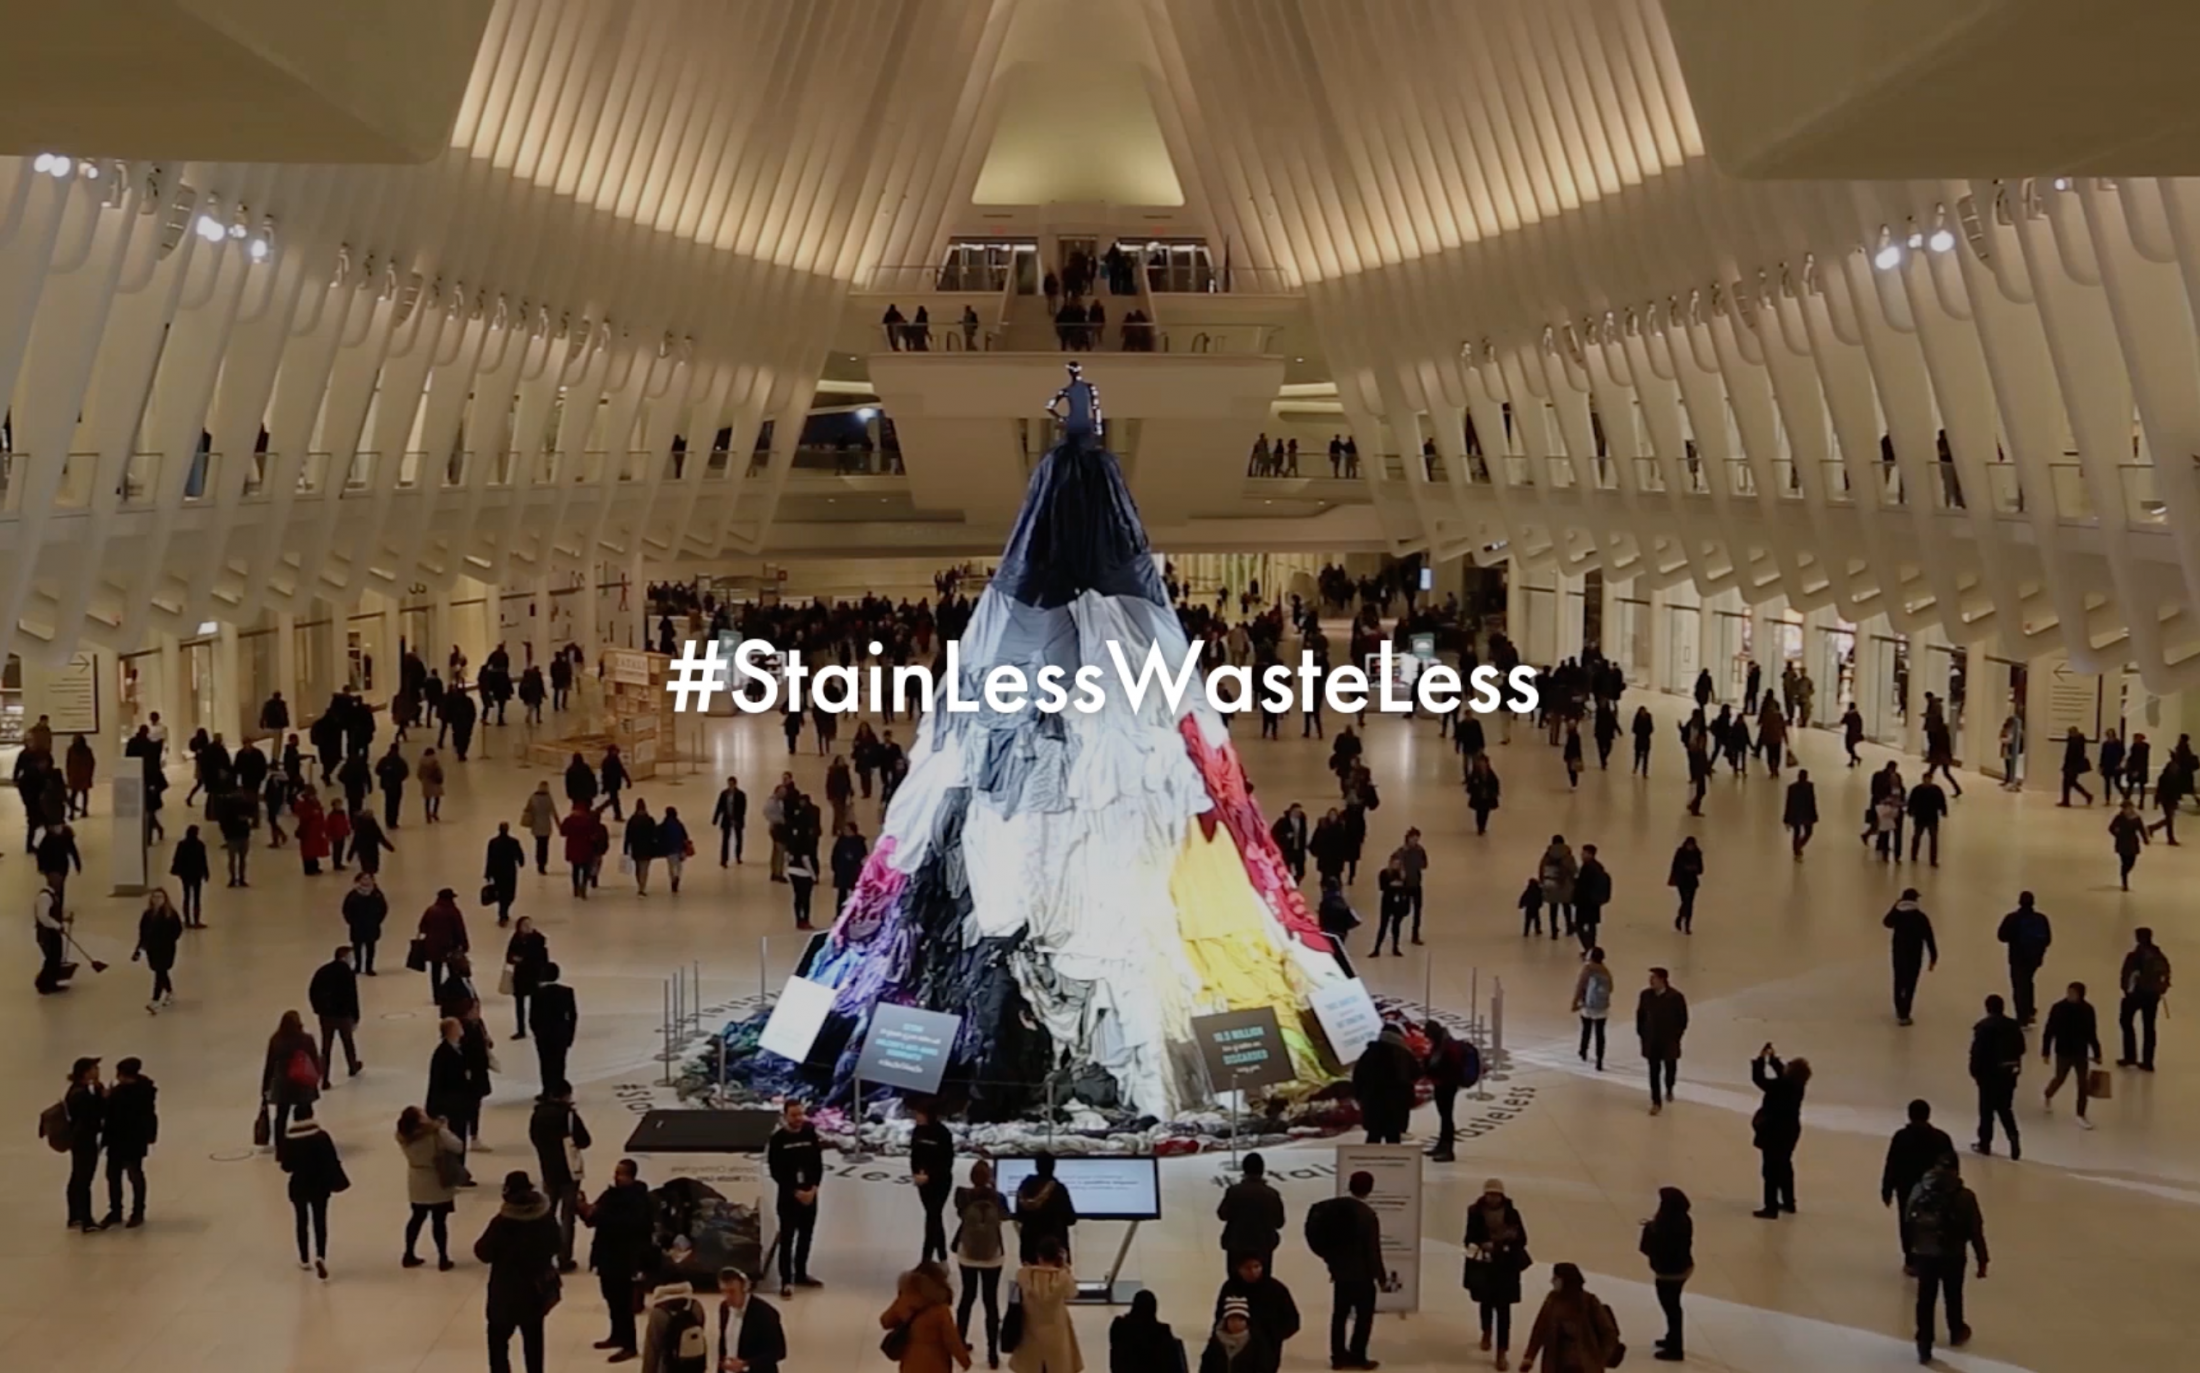 Thumbnail for #StainLessWasteLess